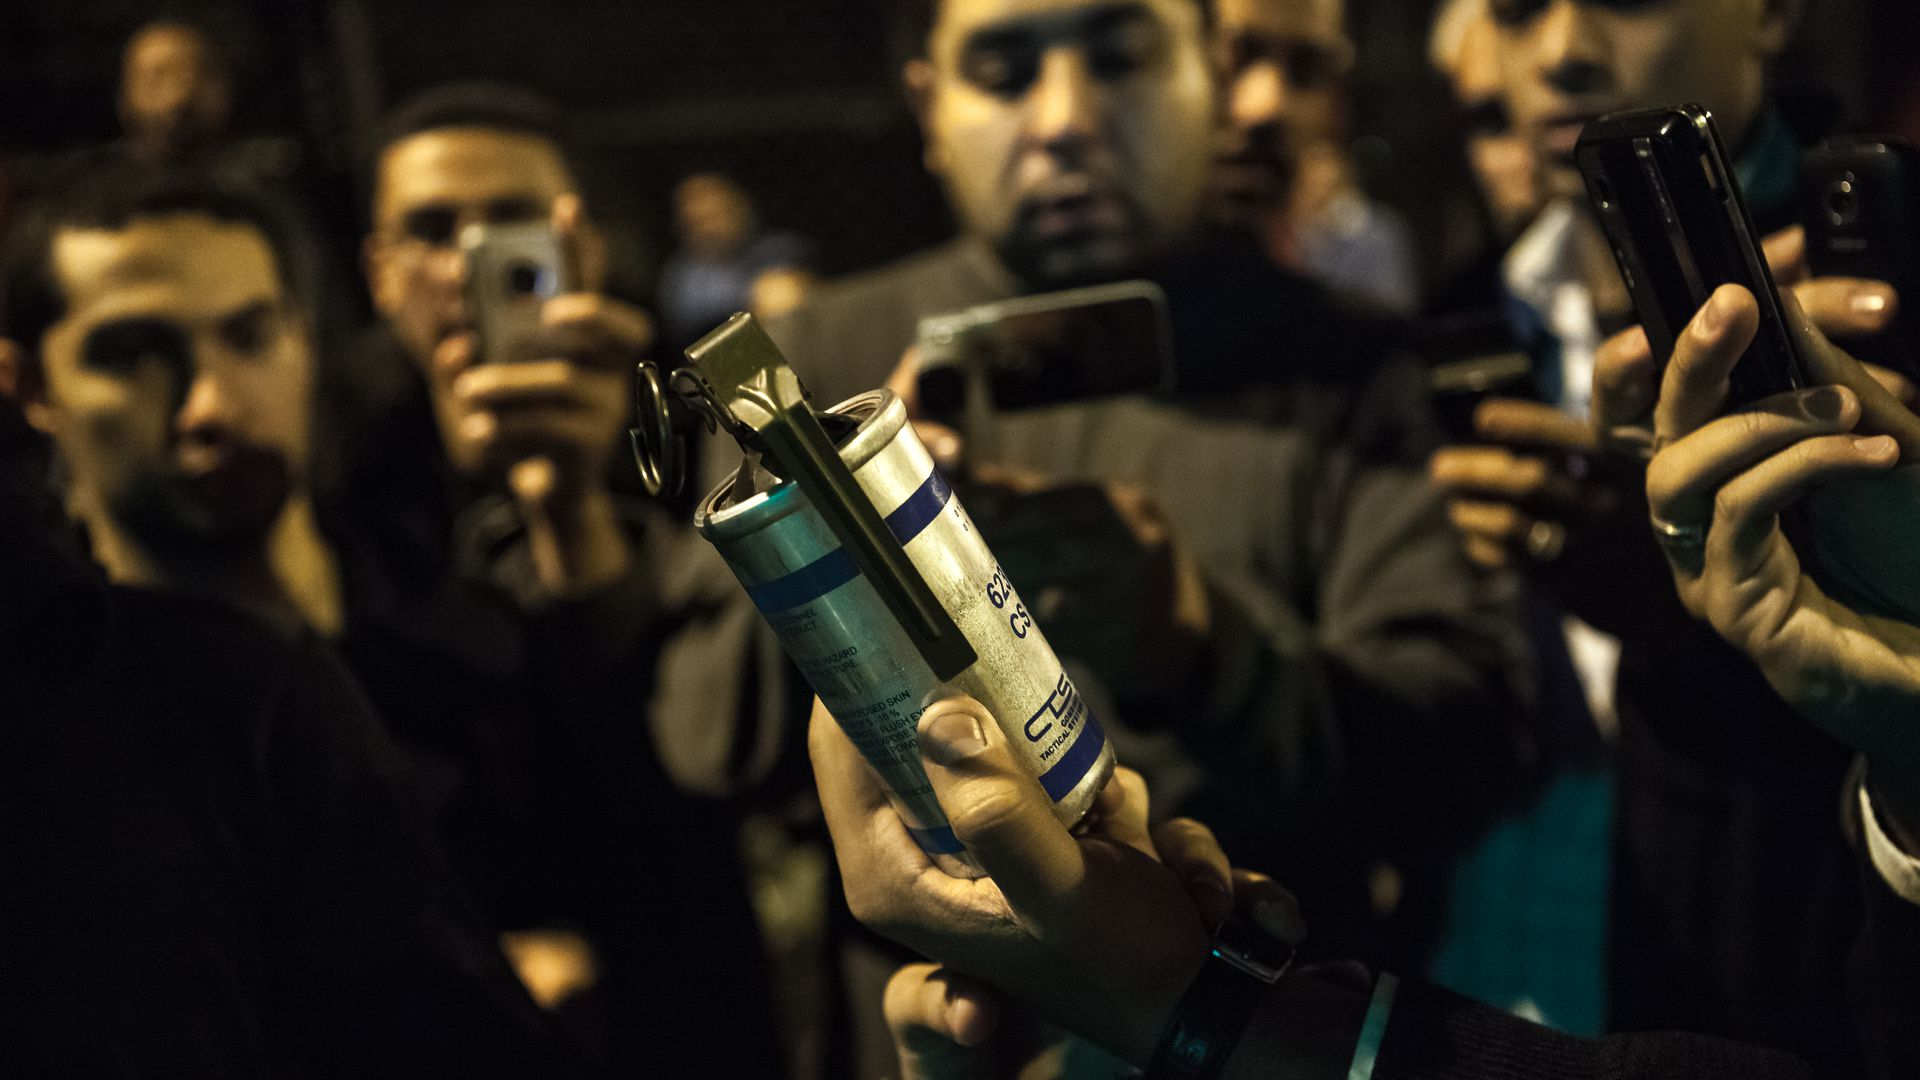 Protesters in Cairo use cell phones to photograph a tear gas container in 2011. Photo: Karimphoto via Getty Images